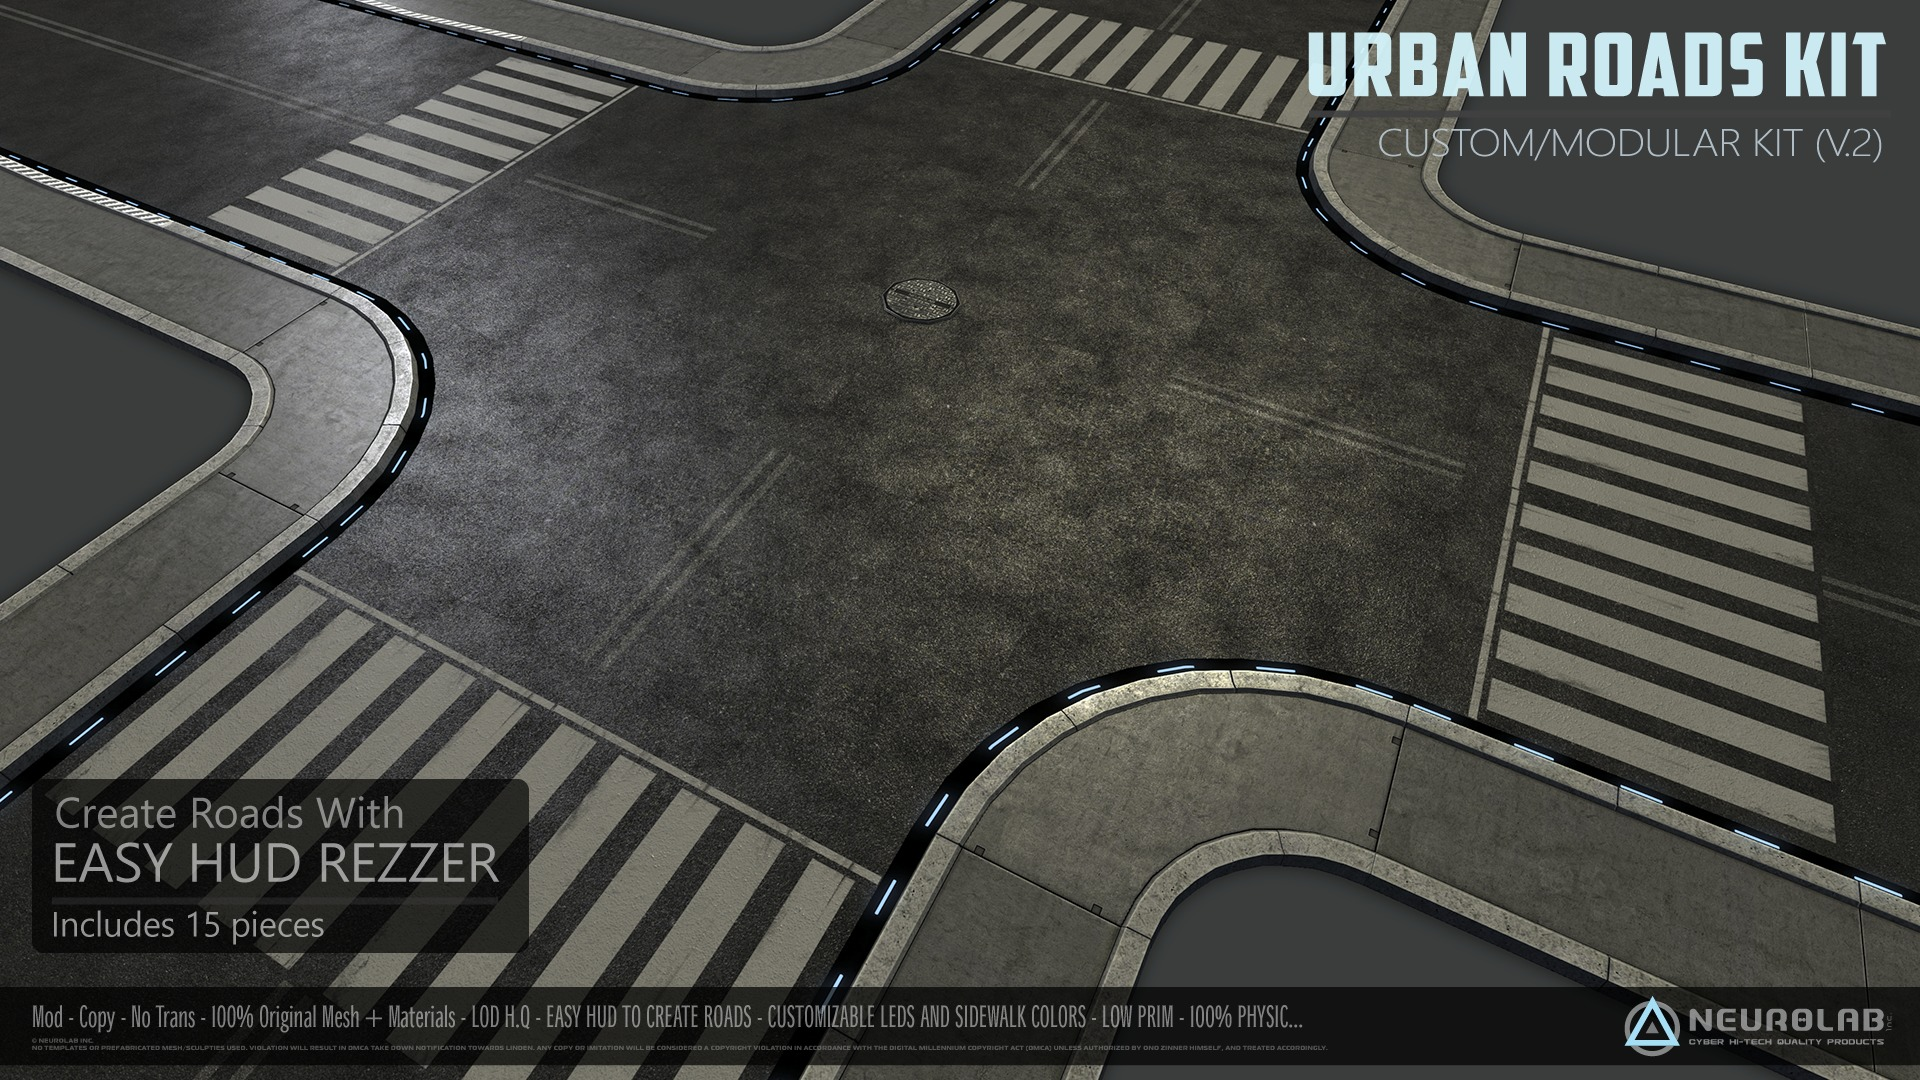 URBAN ROADS KIT V.2 *Update*